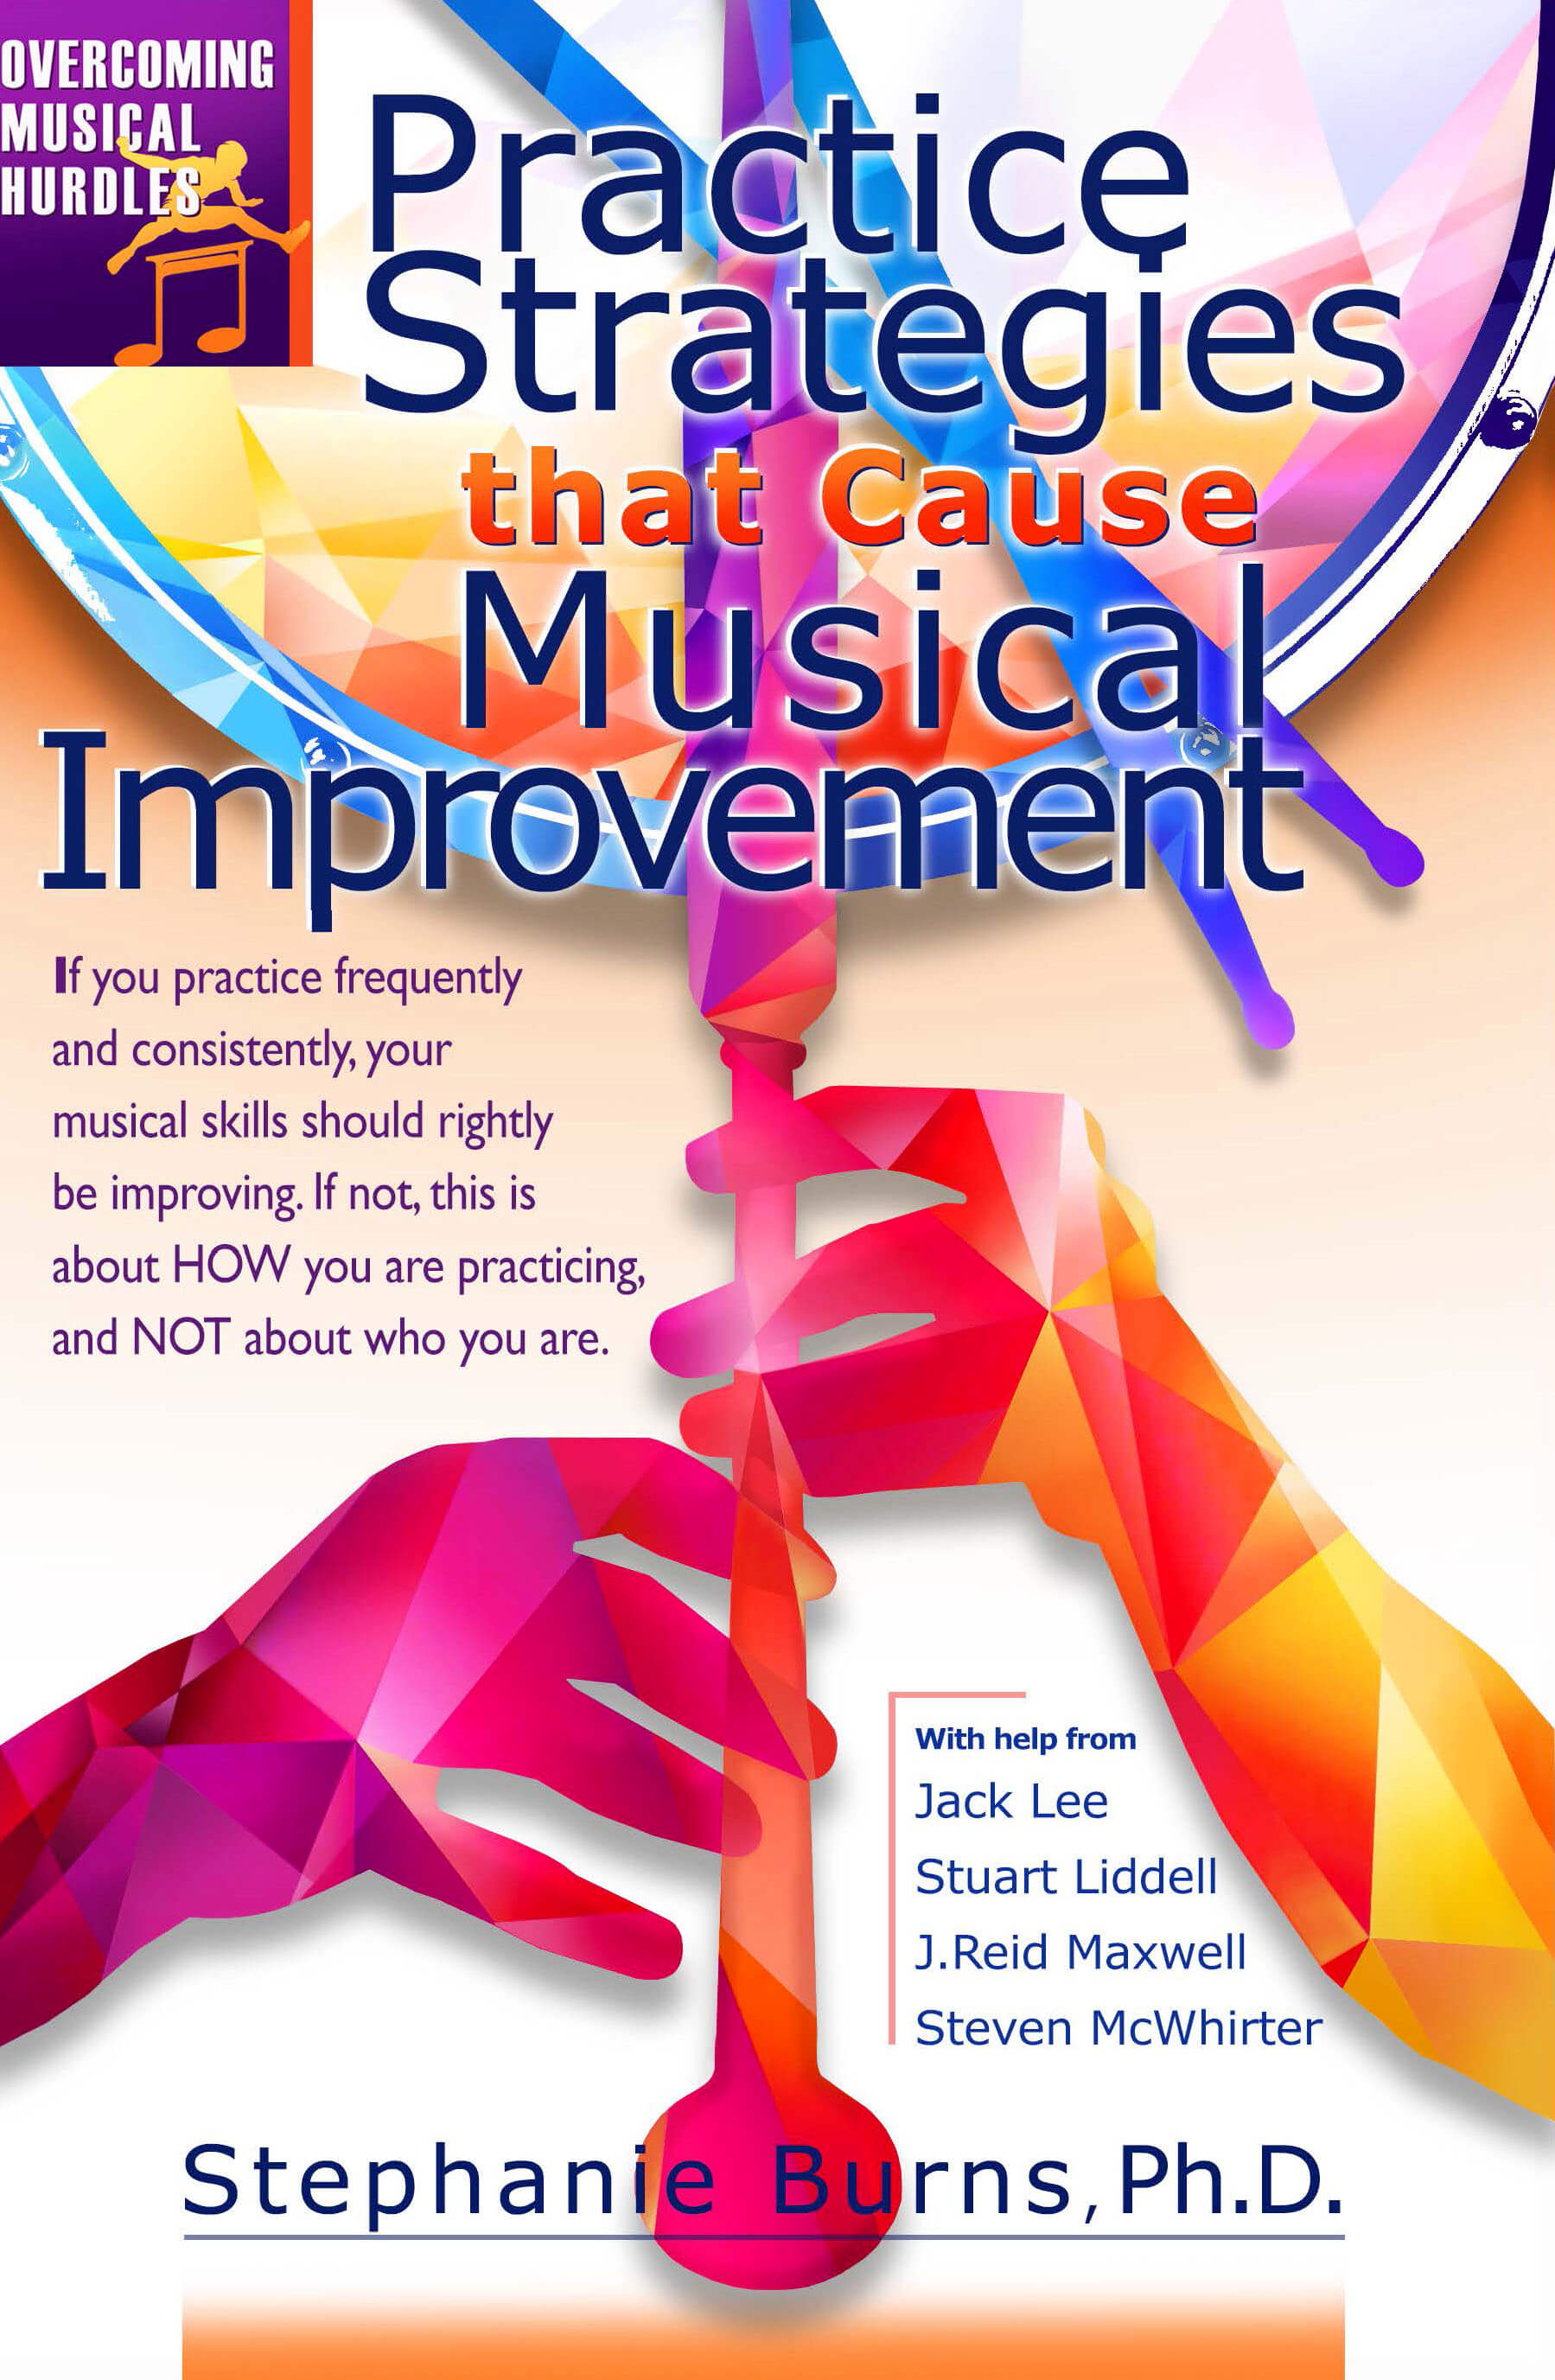 Book review: Practice Strategies That Cause Musical Improvement